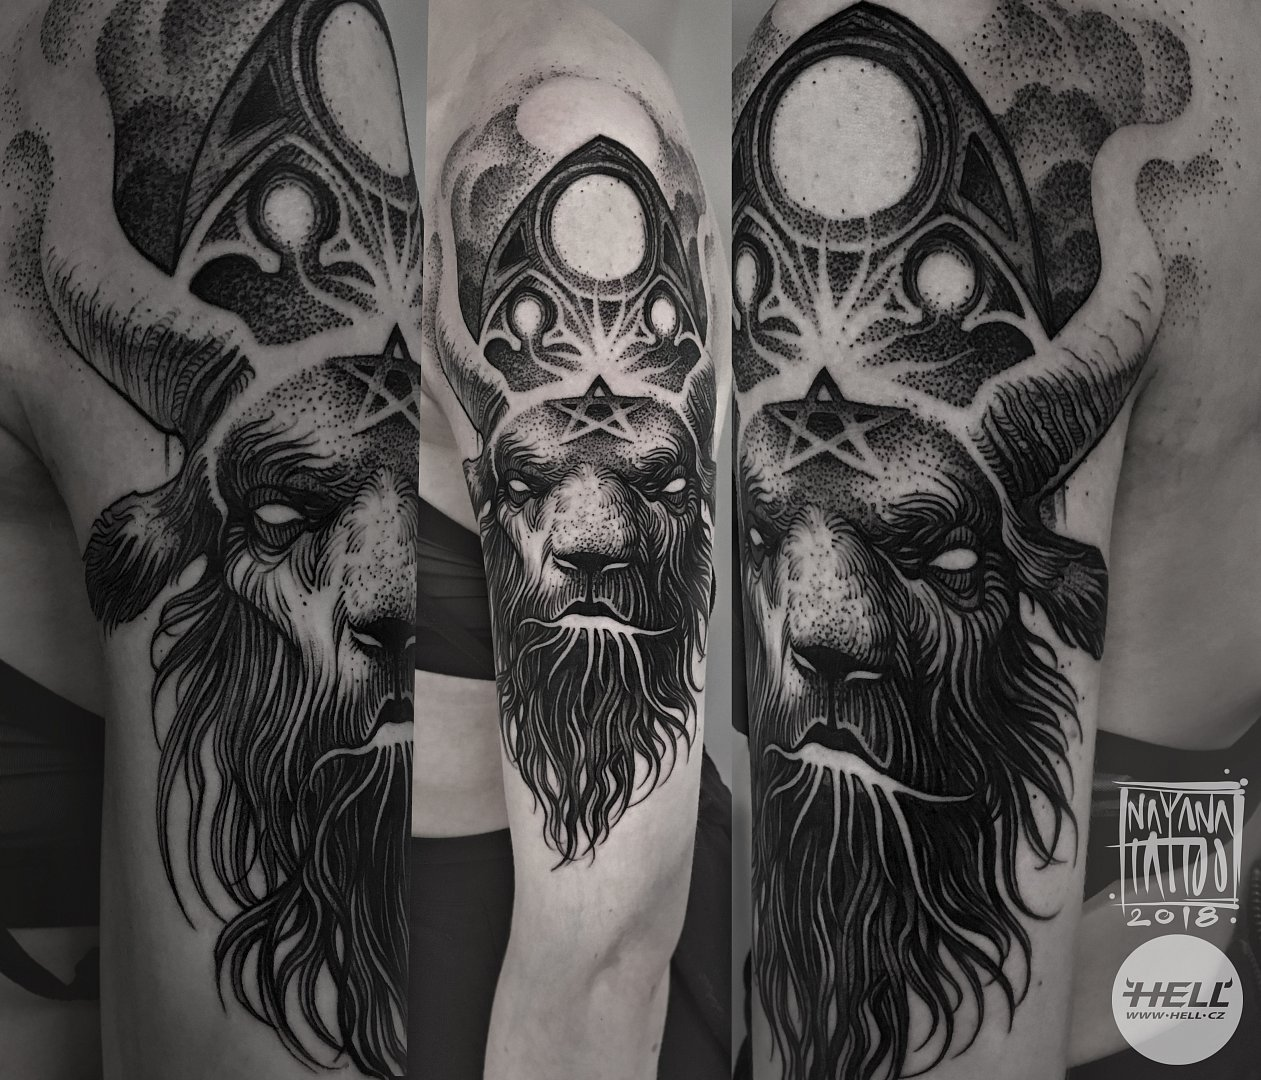 baphomet-gothic-dark-graphic-style-nayana-tattoo